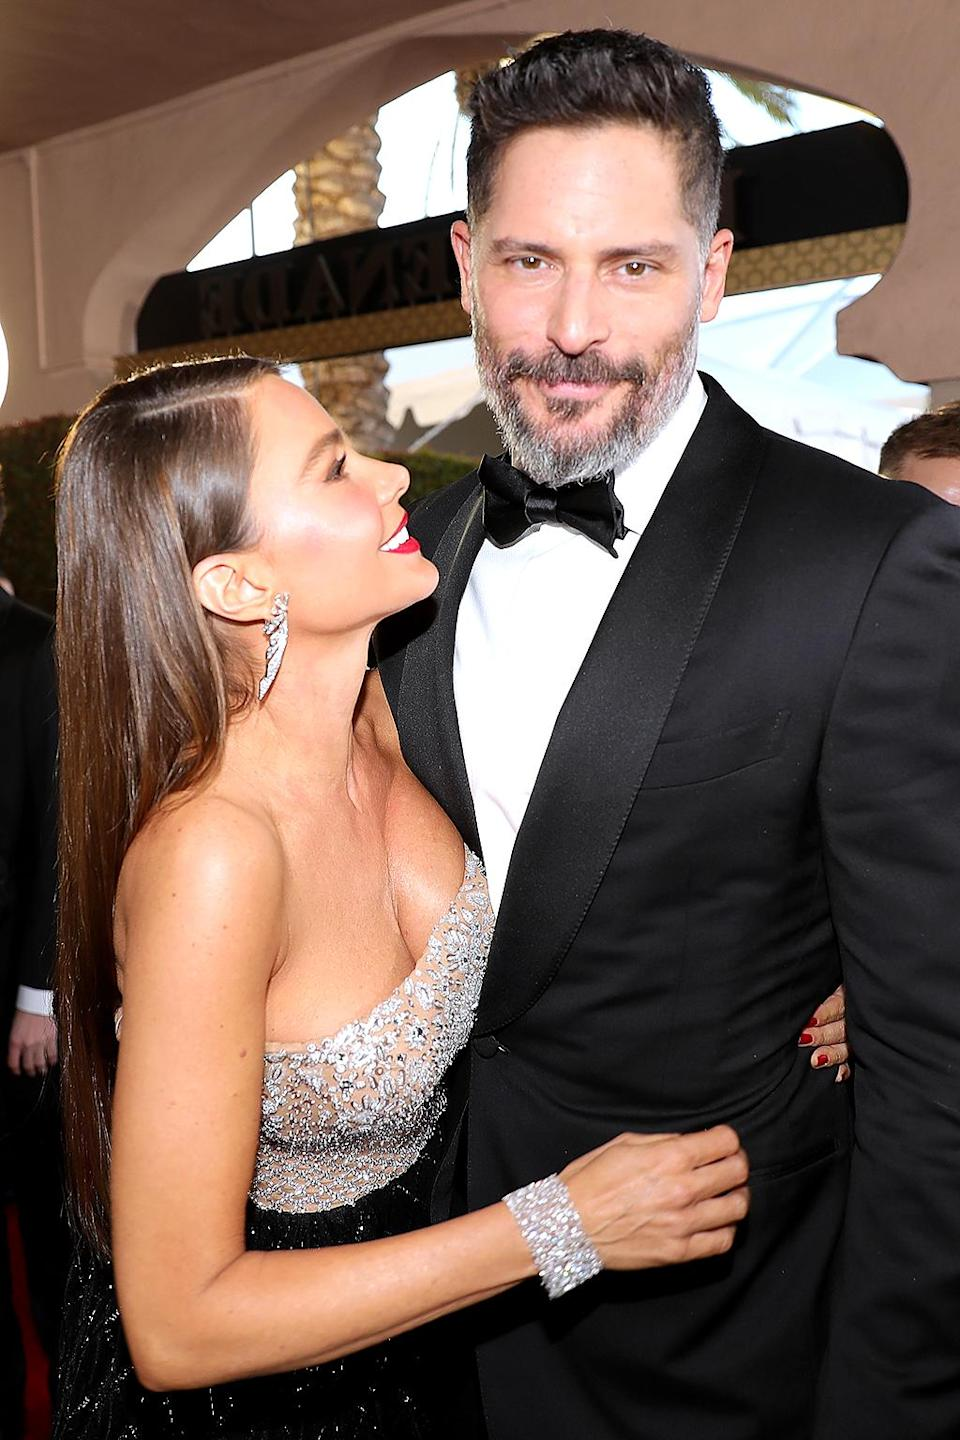 """<p>The pair briefly met at the 2012 MTV Movie Awards and — more memorably — two years later at the White House Correspondents' Dinner, at which he was <a rel=""""nofollow"""" href=""""https://www.yahoo.com/movies/joe-manganiello-caught-checking-sofia-vergaras-butt-months-135000109-us-weekly.html?nf=1"""" data-ylk=""""slk:unabashedly checking her out;outcm:mb_qualified_link;_E:mb_qualified_link;ct:story;"""" class=""""link rapid-noclick-resp yahoo-link"""">unabashedly checking her out</a>. When she split with her fiancé, <a rel=""""nofollow"""" href=""""https://www.yahoo.com/celebrity/sofia-vergara-is-being-sued-by-her-frozen-embryos-184157054.html"""" data-ylk=""""slk:embryo seeker Nick Loeb;outcm:mb_qualified_link;_E:mb_qualified_link;ct:story;"""" class=""""link rapid-noclick-resp yahoo-link"""">embryo seeker Nick Loeb</a>, Joe reached out — through his friend (and her <i>Modern Family</i> co-star) Jesse Tyler Ferguson. Sofia <a rel=""""nofollow"""" href=""""https://www.yahoo.com/tv/sofia-vergara-moving-house-joe-074700497.html"""" data-ylk=""""slk:said;outcm:mb_qualified_link;_E:mb_qualified_link;ct:story;"""" class=""""link rapid-noclick-resp yahoo-link"""">said</a> on <i>The Ellen DeGeneres Show</i> that Joe """"seemed like a lot of work"""" because he was """"so handsome and younger than me and so sexy and best bachelor or whatever he was."""" However, he persuaded her in person to go out with him when he flew to Louisiana, where she was working, and got her to go on a date with him. They said """"I do"""" in 2015. (Photo: Neilson Barnard/Getty Images) </p>"""